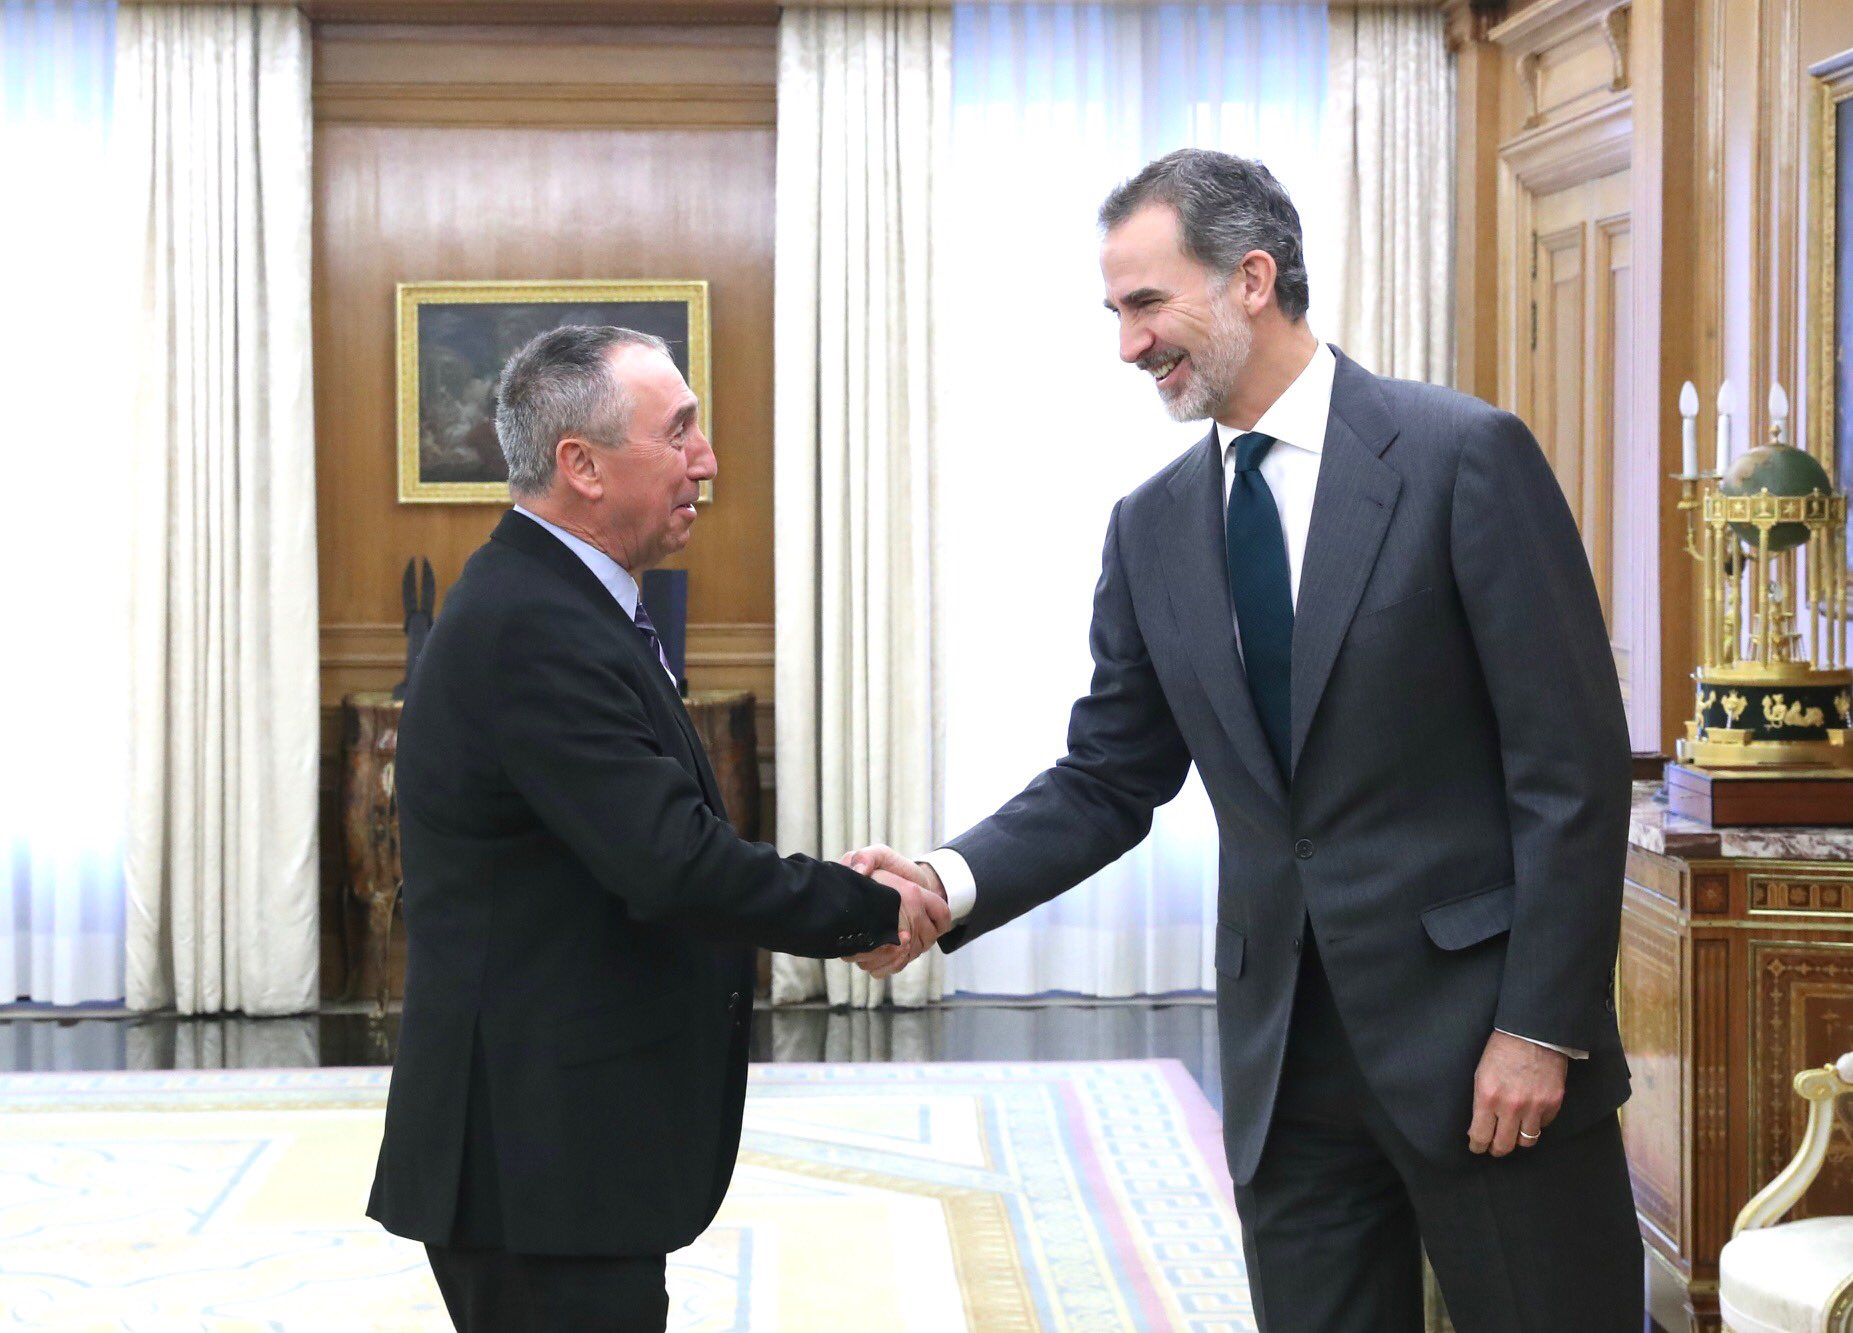 King Felipe VI to meet party leaders ahead of nominating new Government